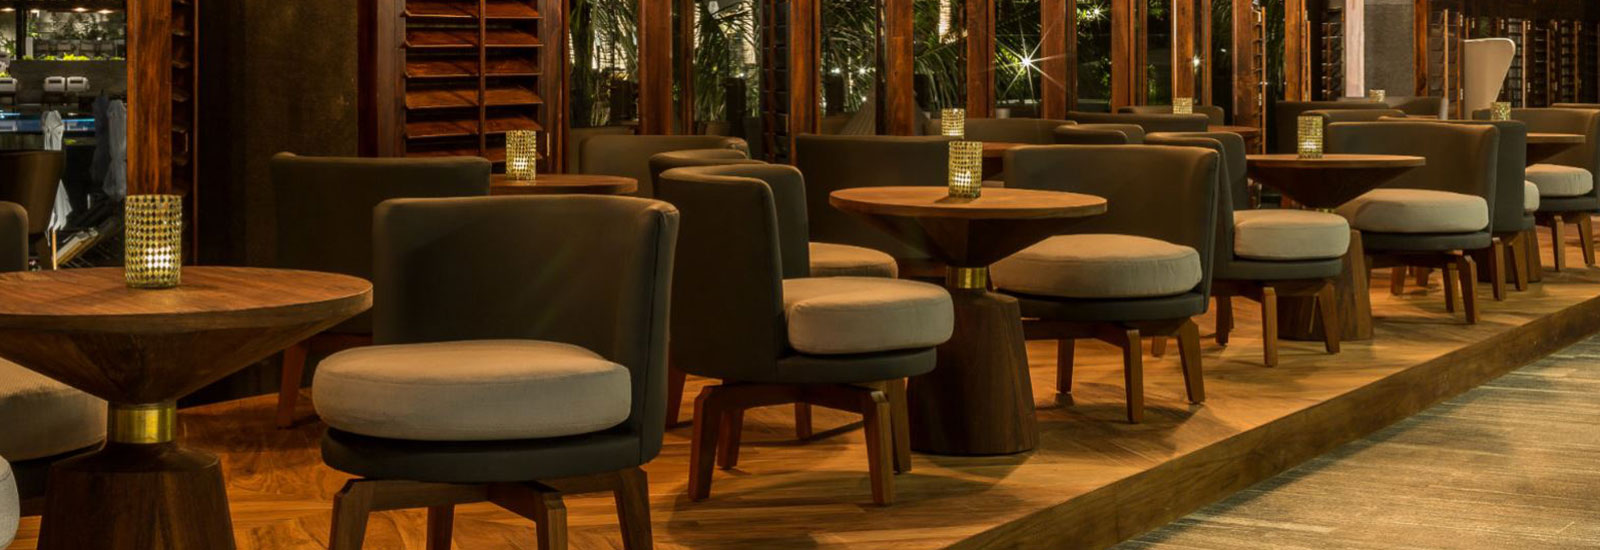 Make your Dining Reservations at Grand Velas Los Cabos